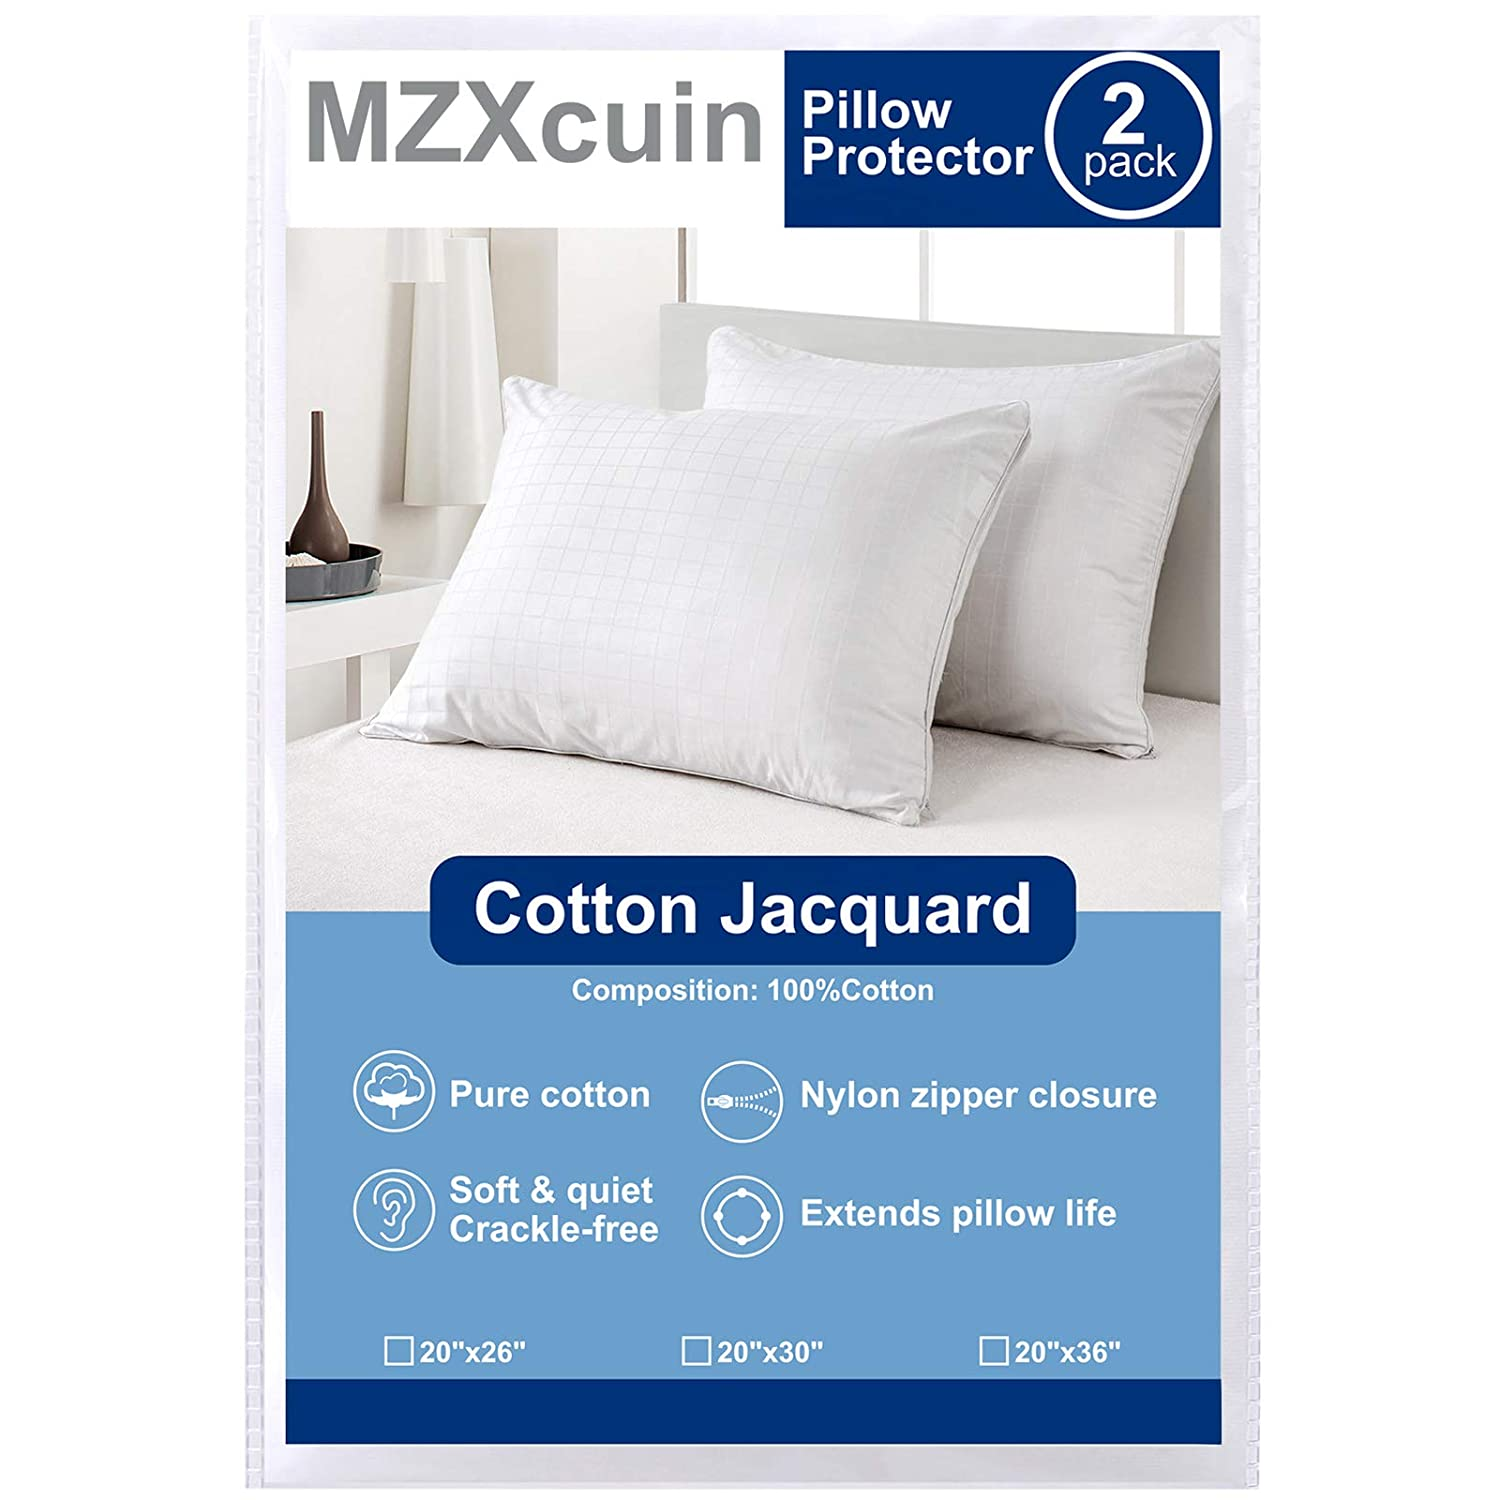 MZXcuin 2-Pack 100% Cotton Pillow Protectors Zipper Pillowcases, Premium Allergy Dust Mite Bed Bug Control – Anti-Microbial 300 Thread Count Pillow Covers( Standard 20